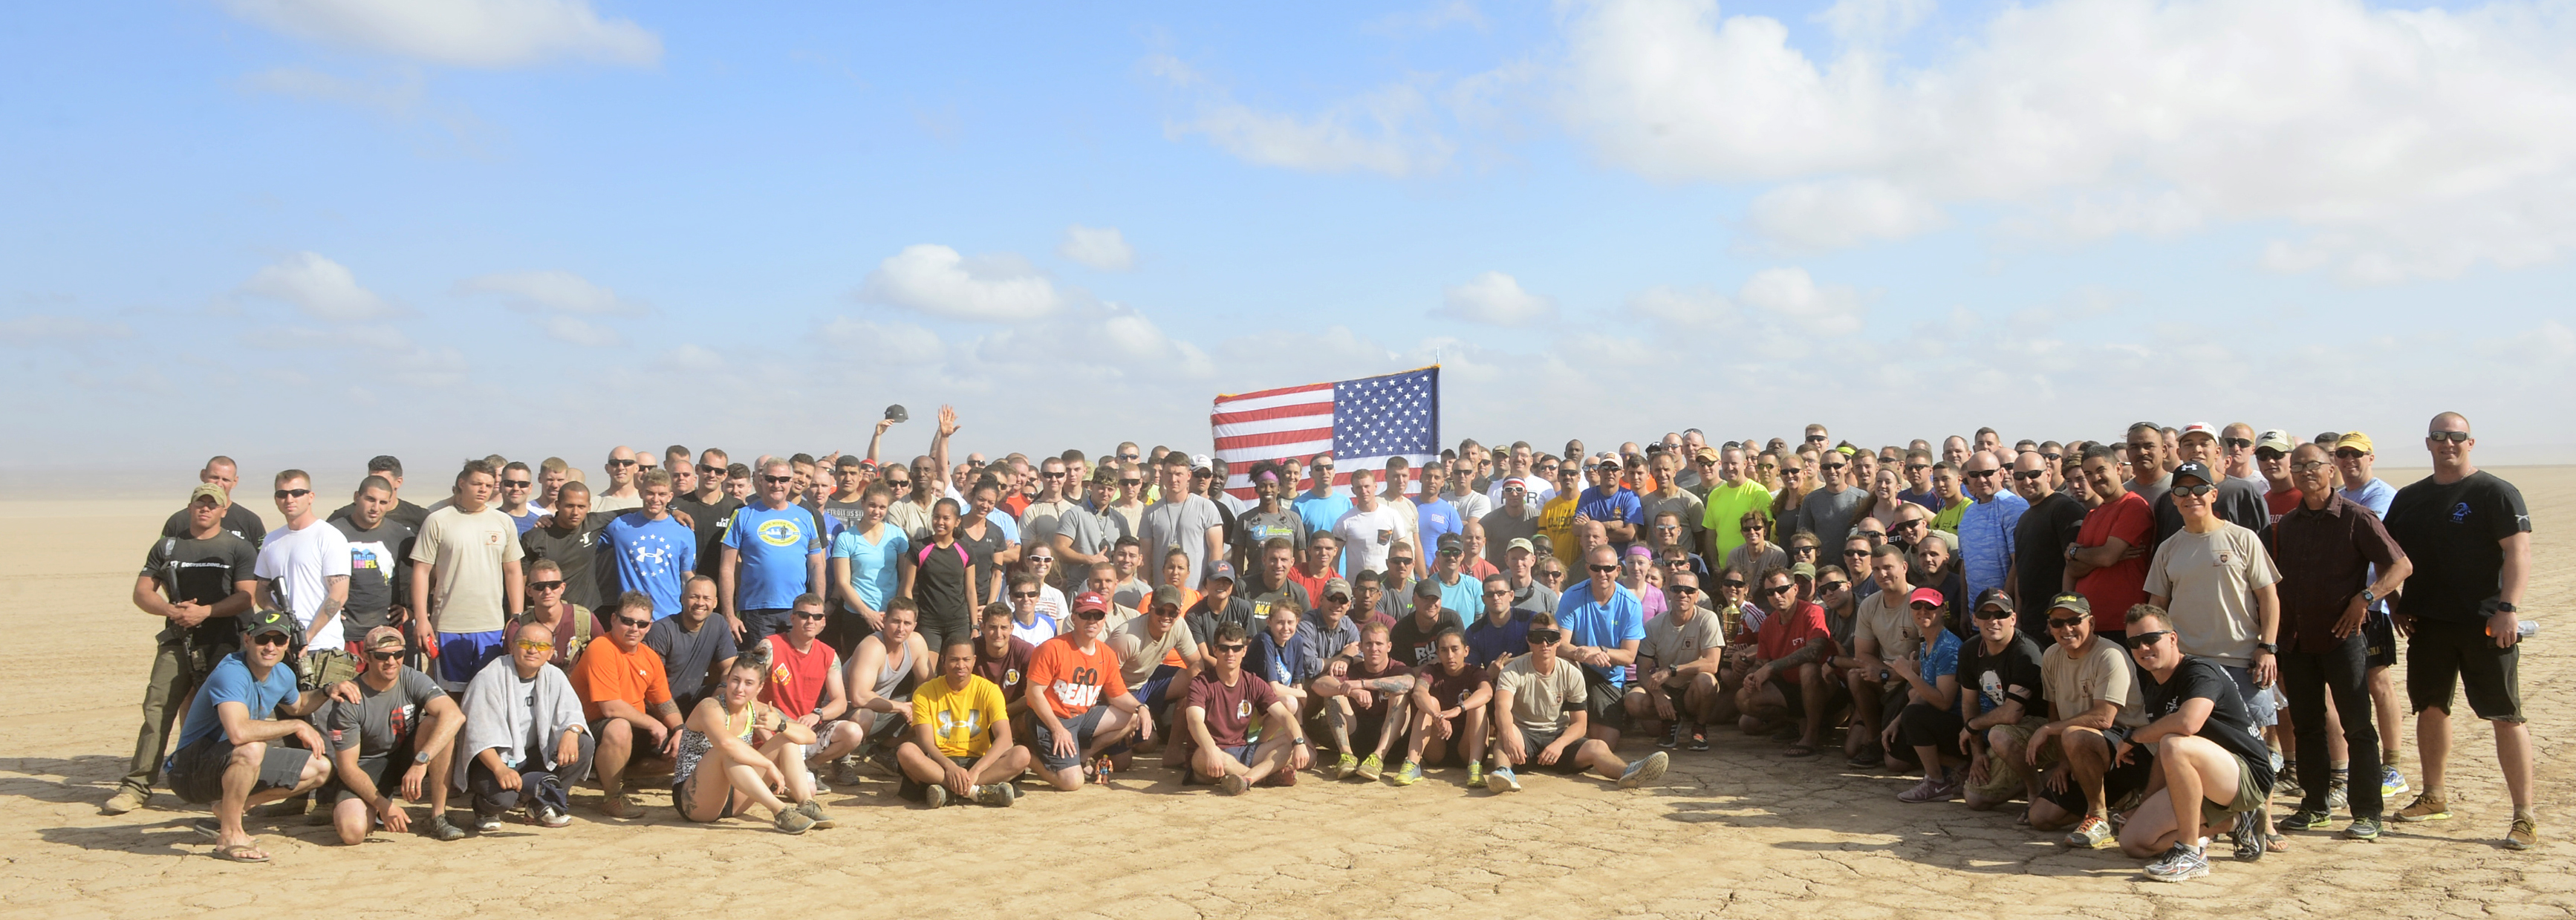 Members of Camp Lemonnier and Combined Joint Task Force-Horn of Africa pose for a group photo after completing the 2015 Grand Bara 15K race in Djibouti Dec. 17, 2015, in Djibouti. More than 1,500 runners from different countries participated in the desert race (U.S. Air Force photo by Tech. Sgt. Dan DeCook)